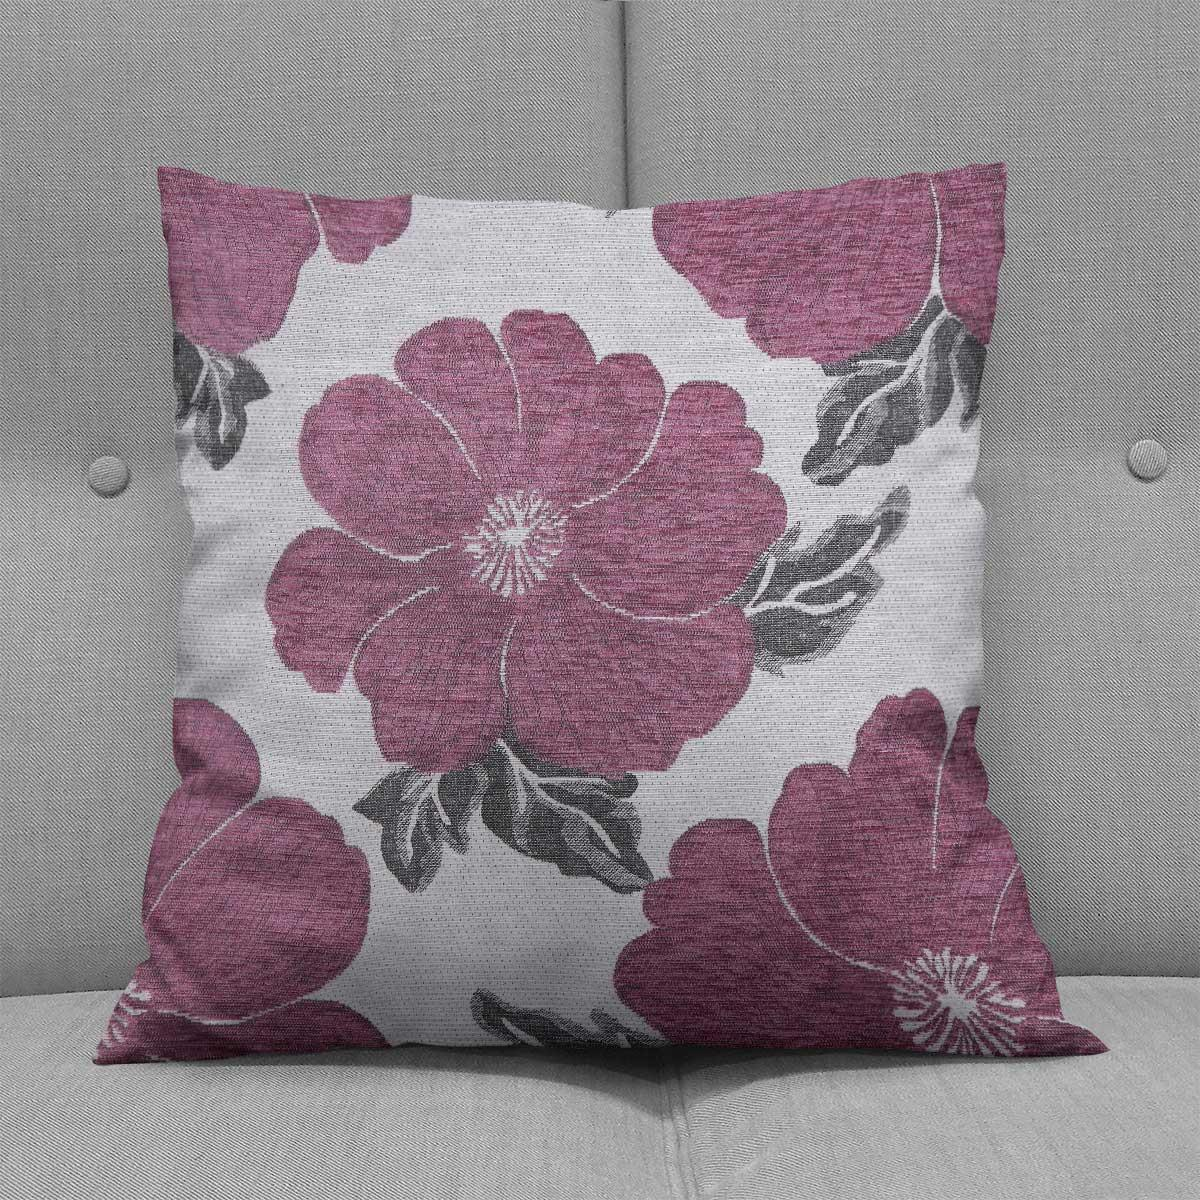 Chenille-Cushion-Cover-Floral-Reversible-Thick-Cushions-Covers-18-034-22-034-9-Colours thumbnail 19